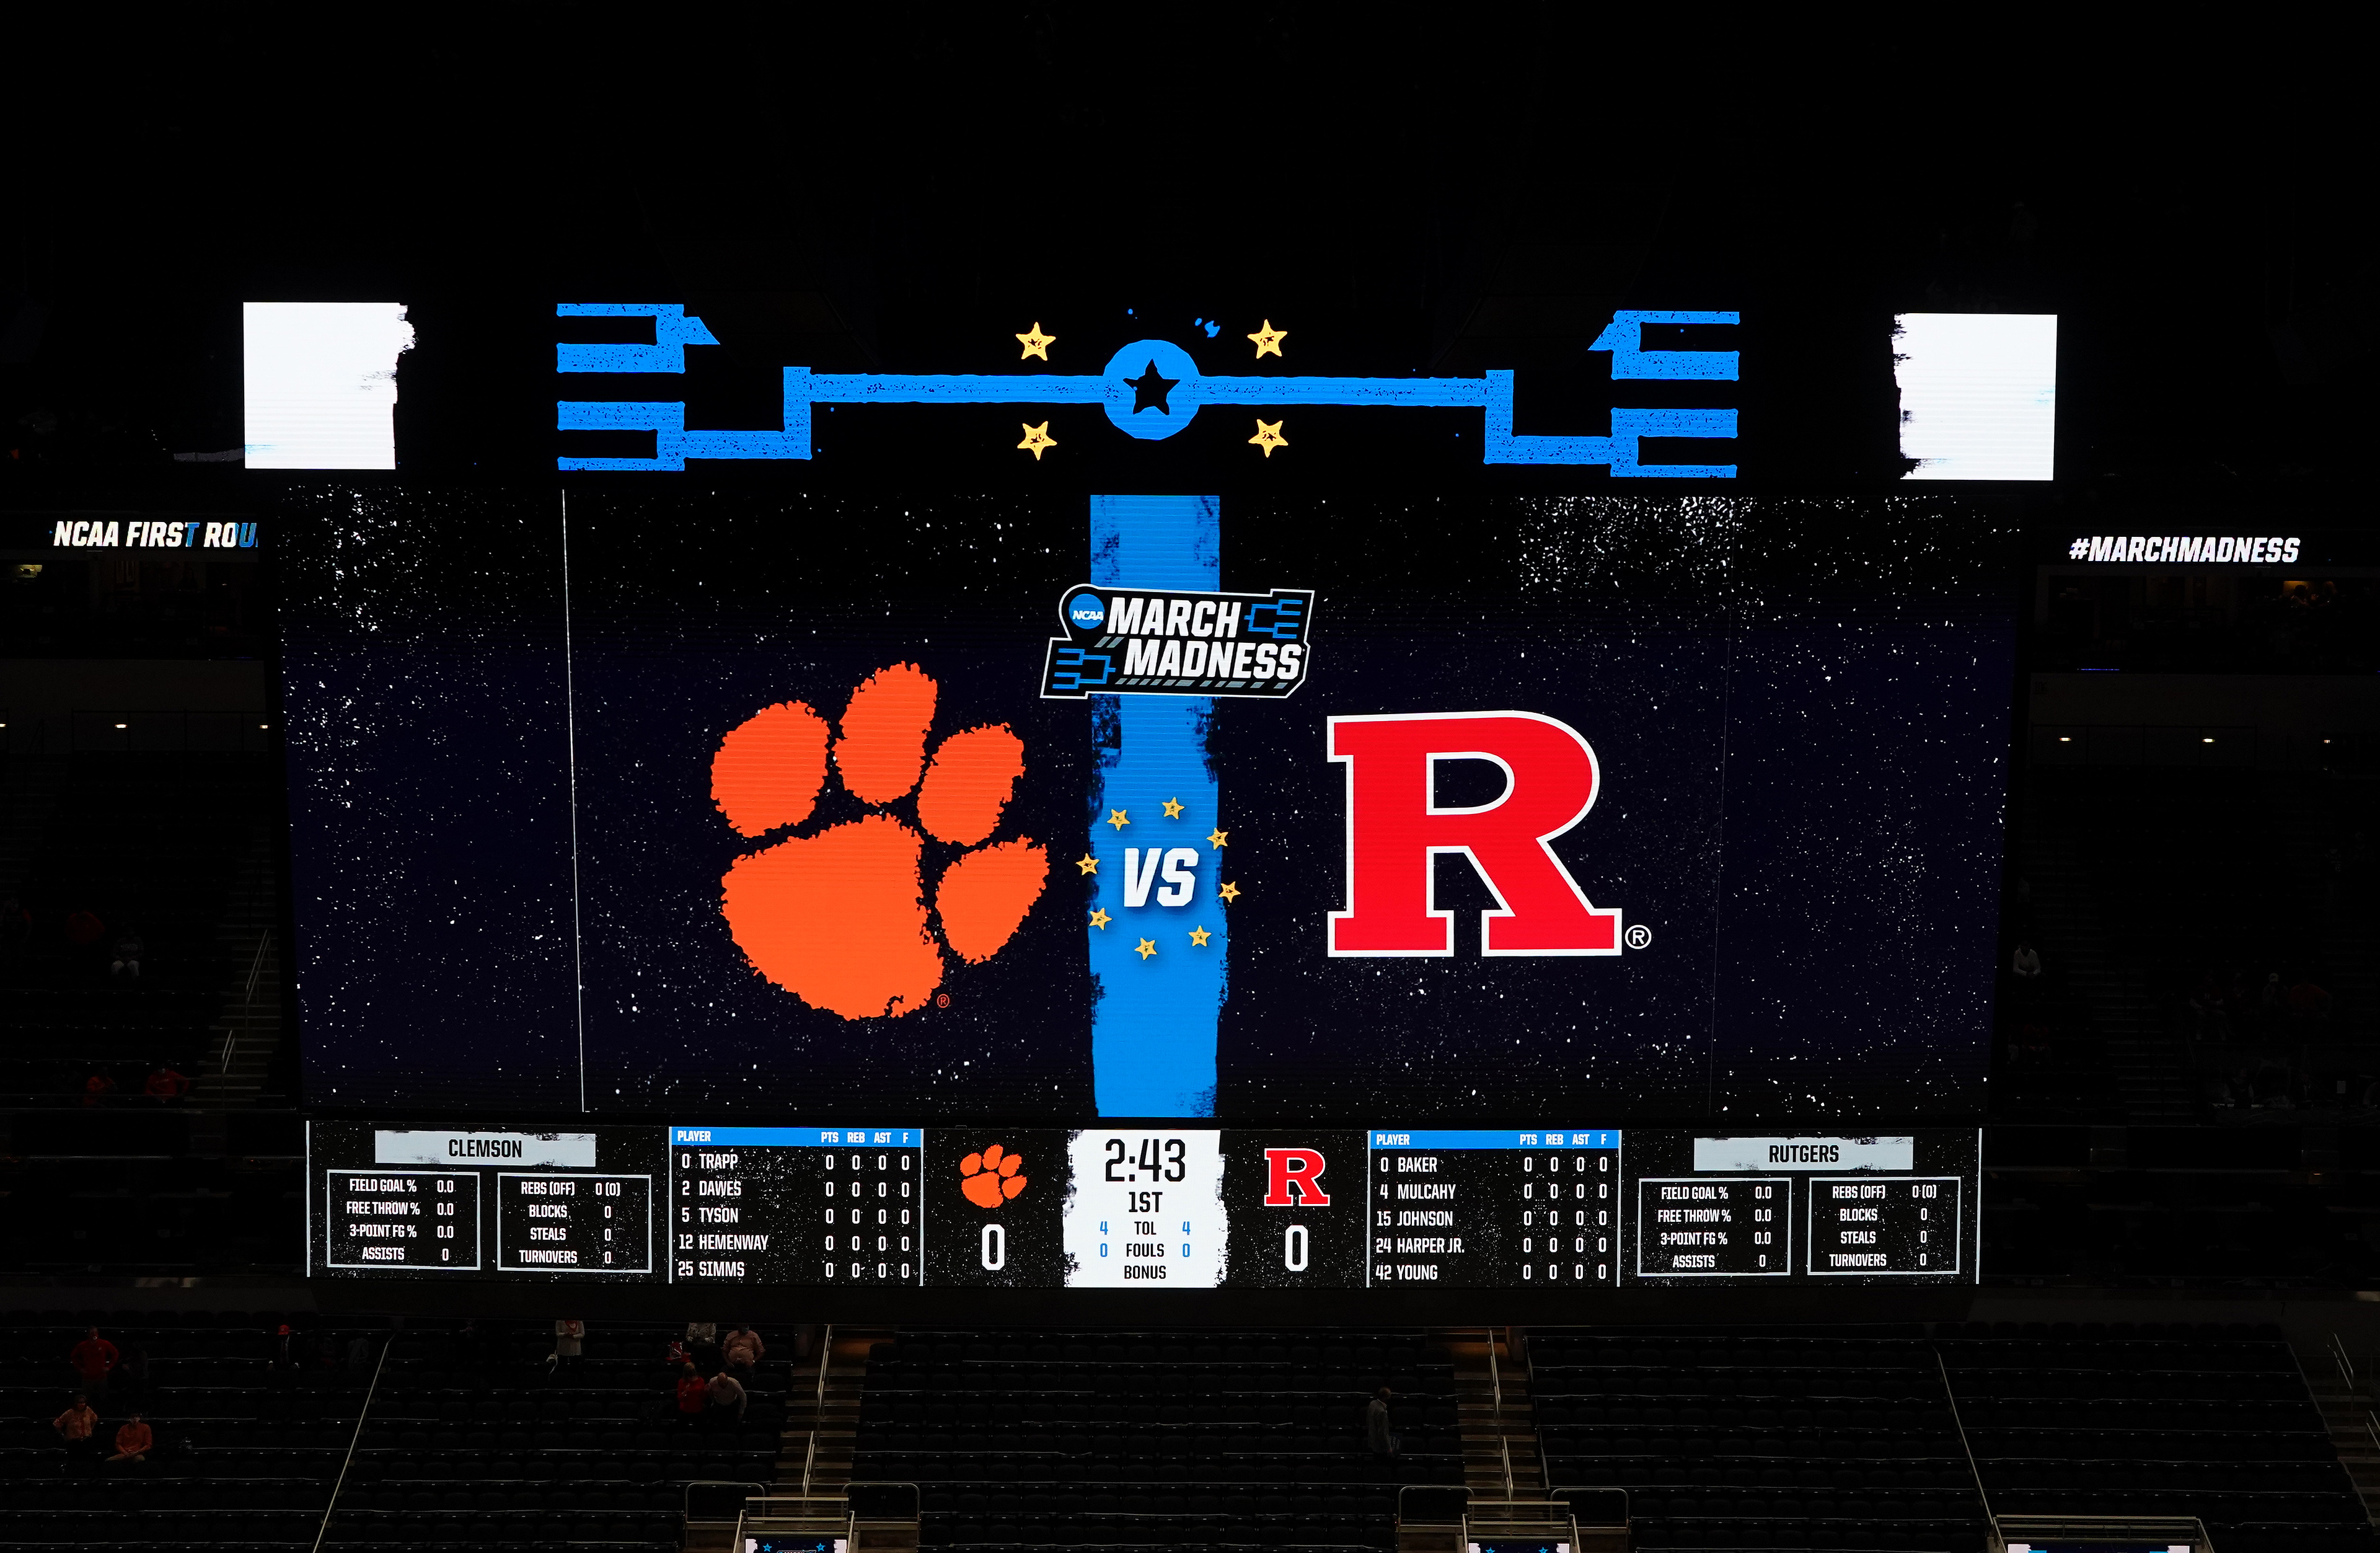 Mar 19, 2021; Indianapolis, Indiana, USA; A detailed view of the scoreboard before the game between the Rutgers Scarlet Knights and the Clemson Tigers in the first round of the 2021 NCAA Tournament at Bankers Life Fieldhouse. Mandatory Credit: Kirby Lee-USA TODAY Sports